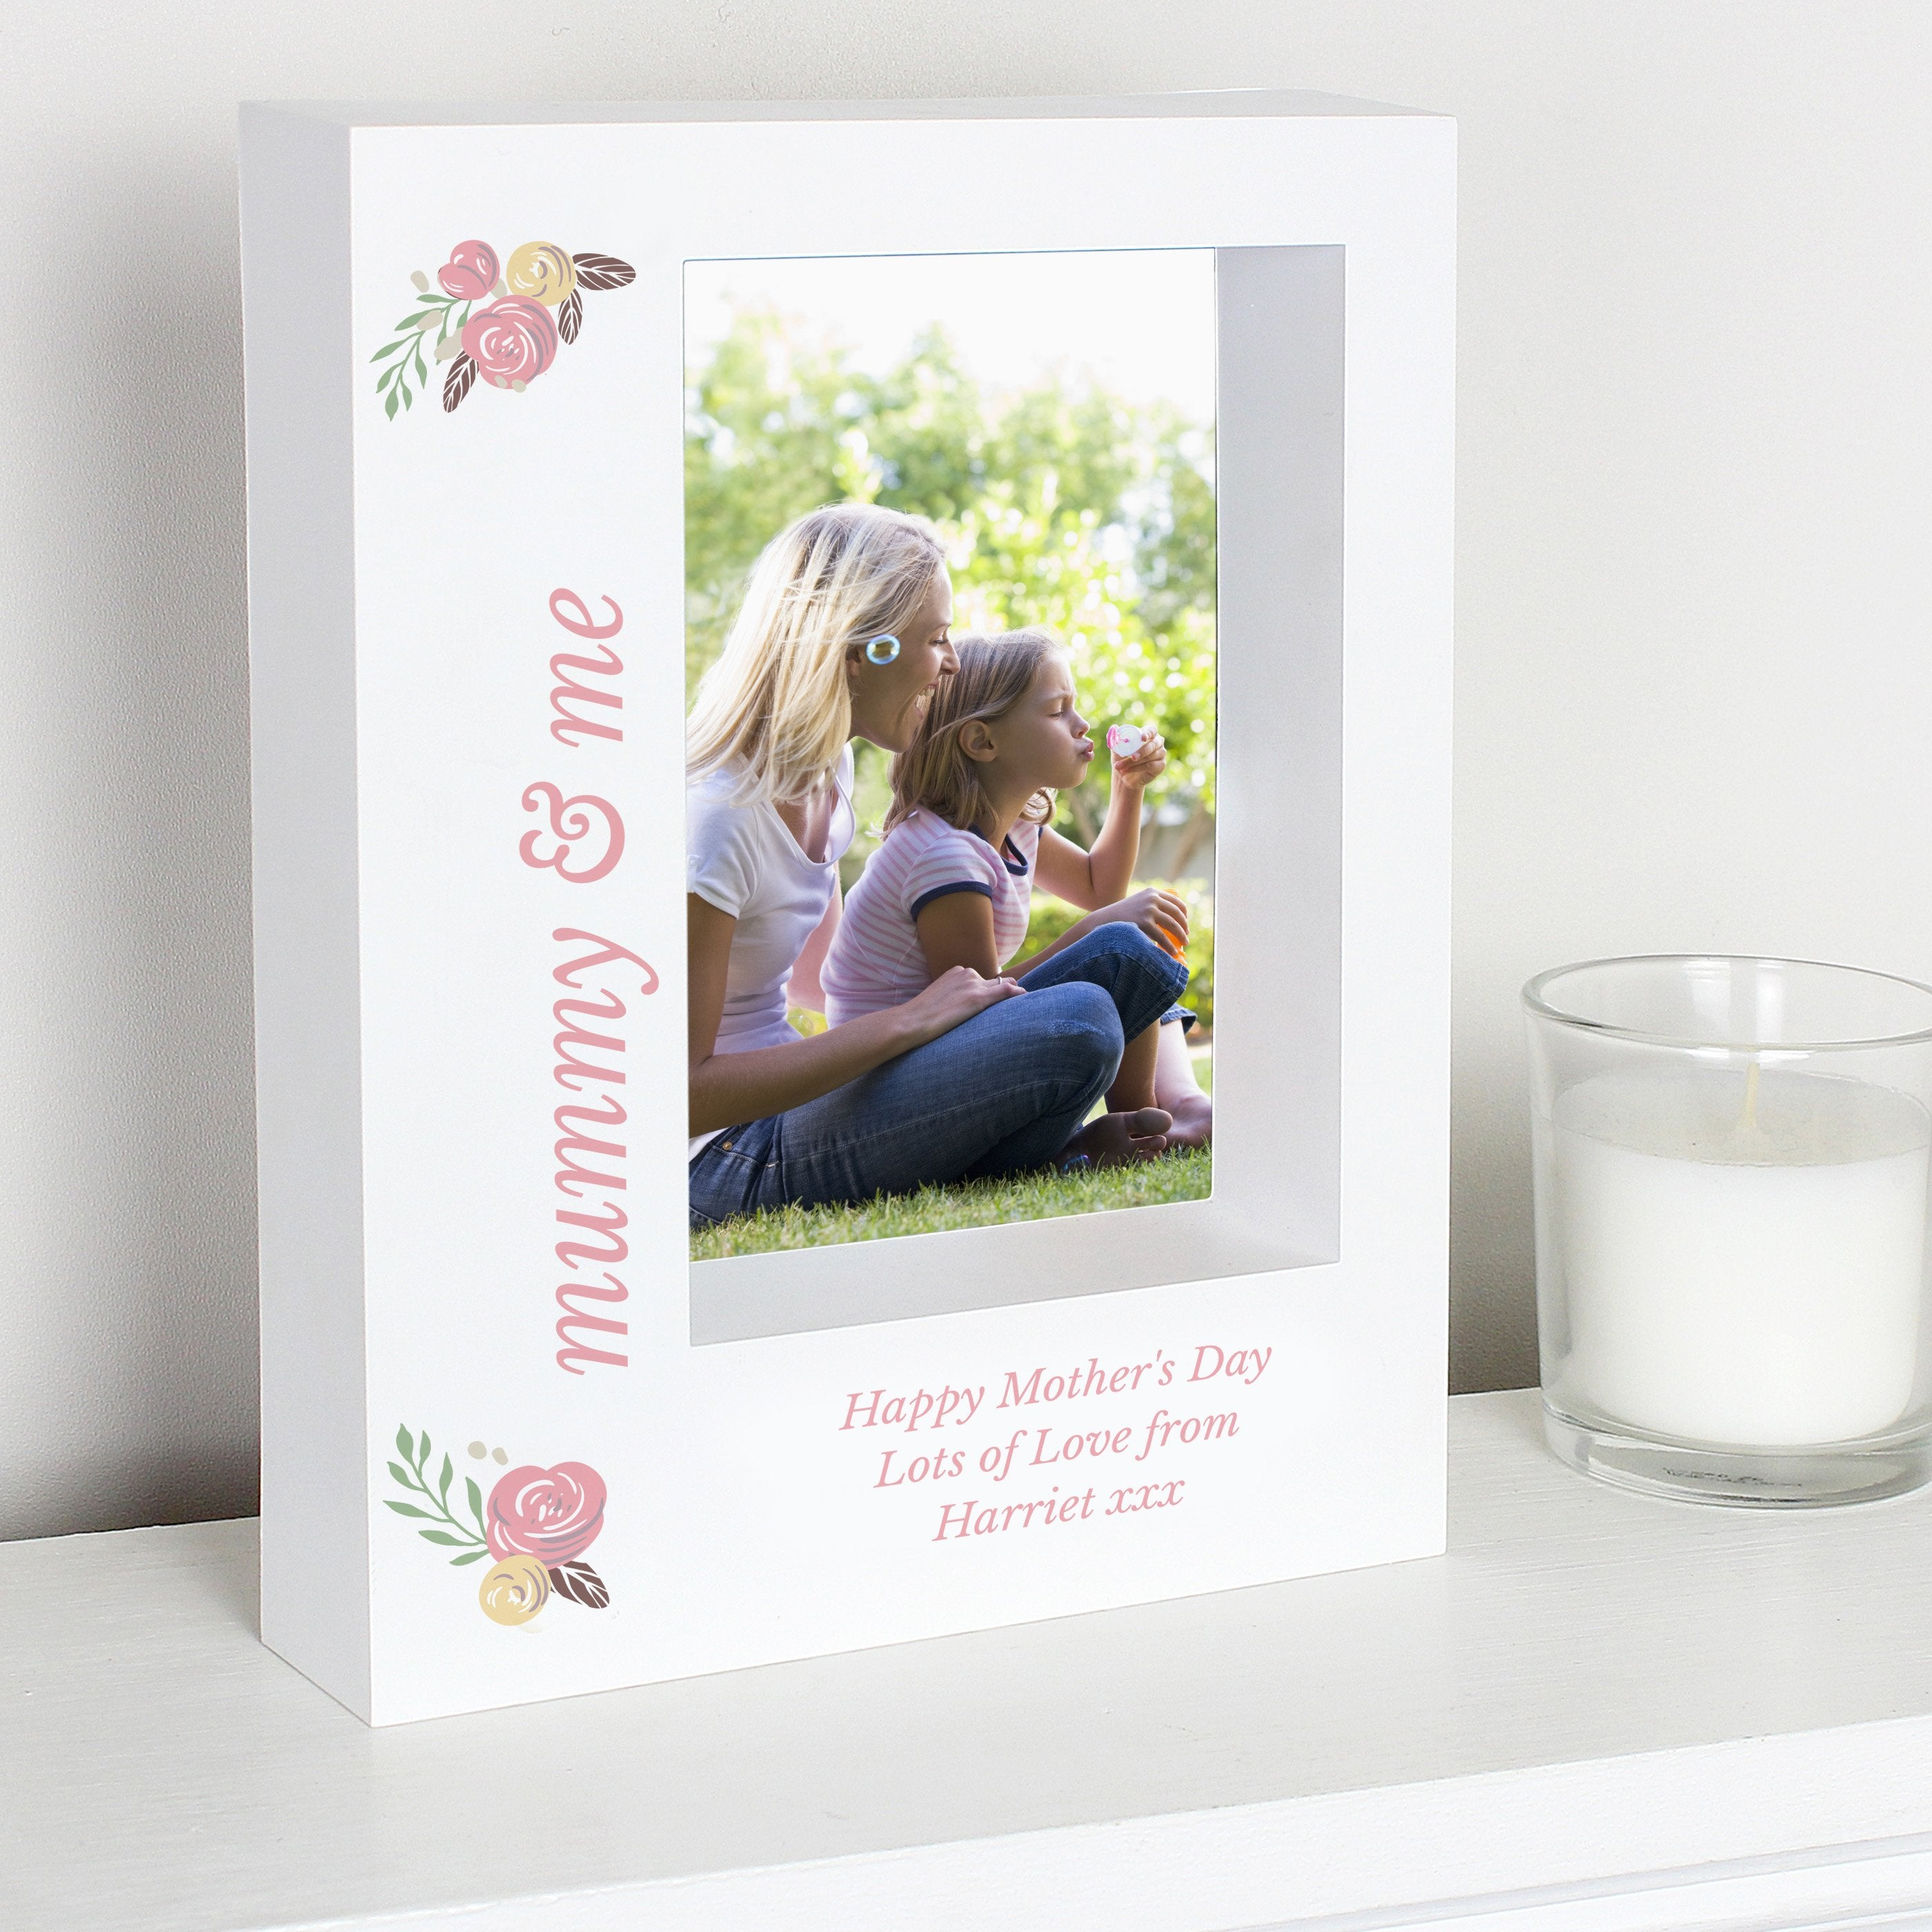 Personalised Floral 7x5 Box Photo Frame - Soap Scent & Home